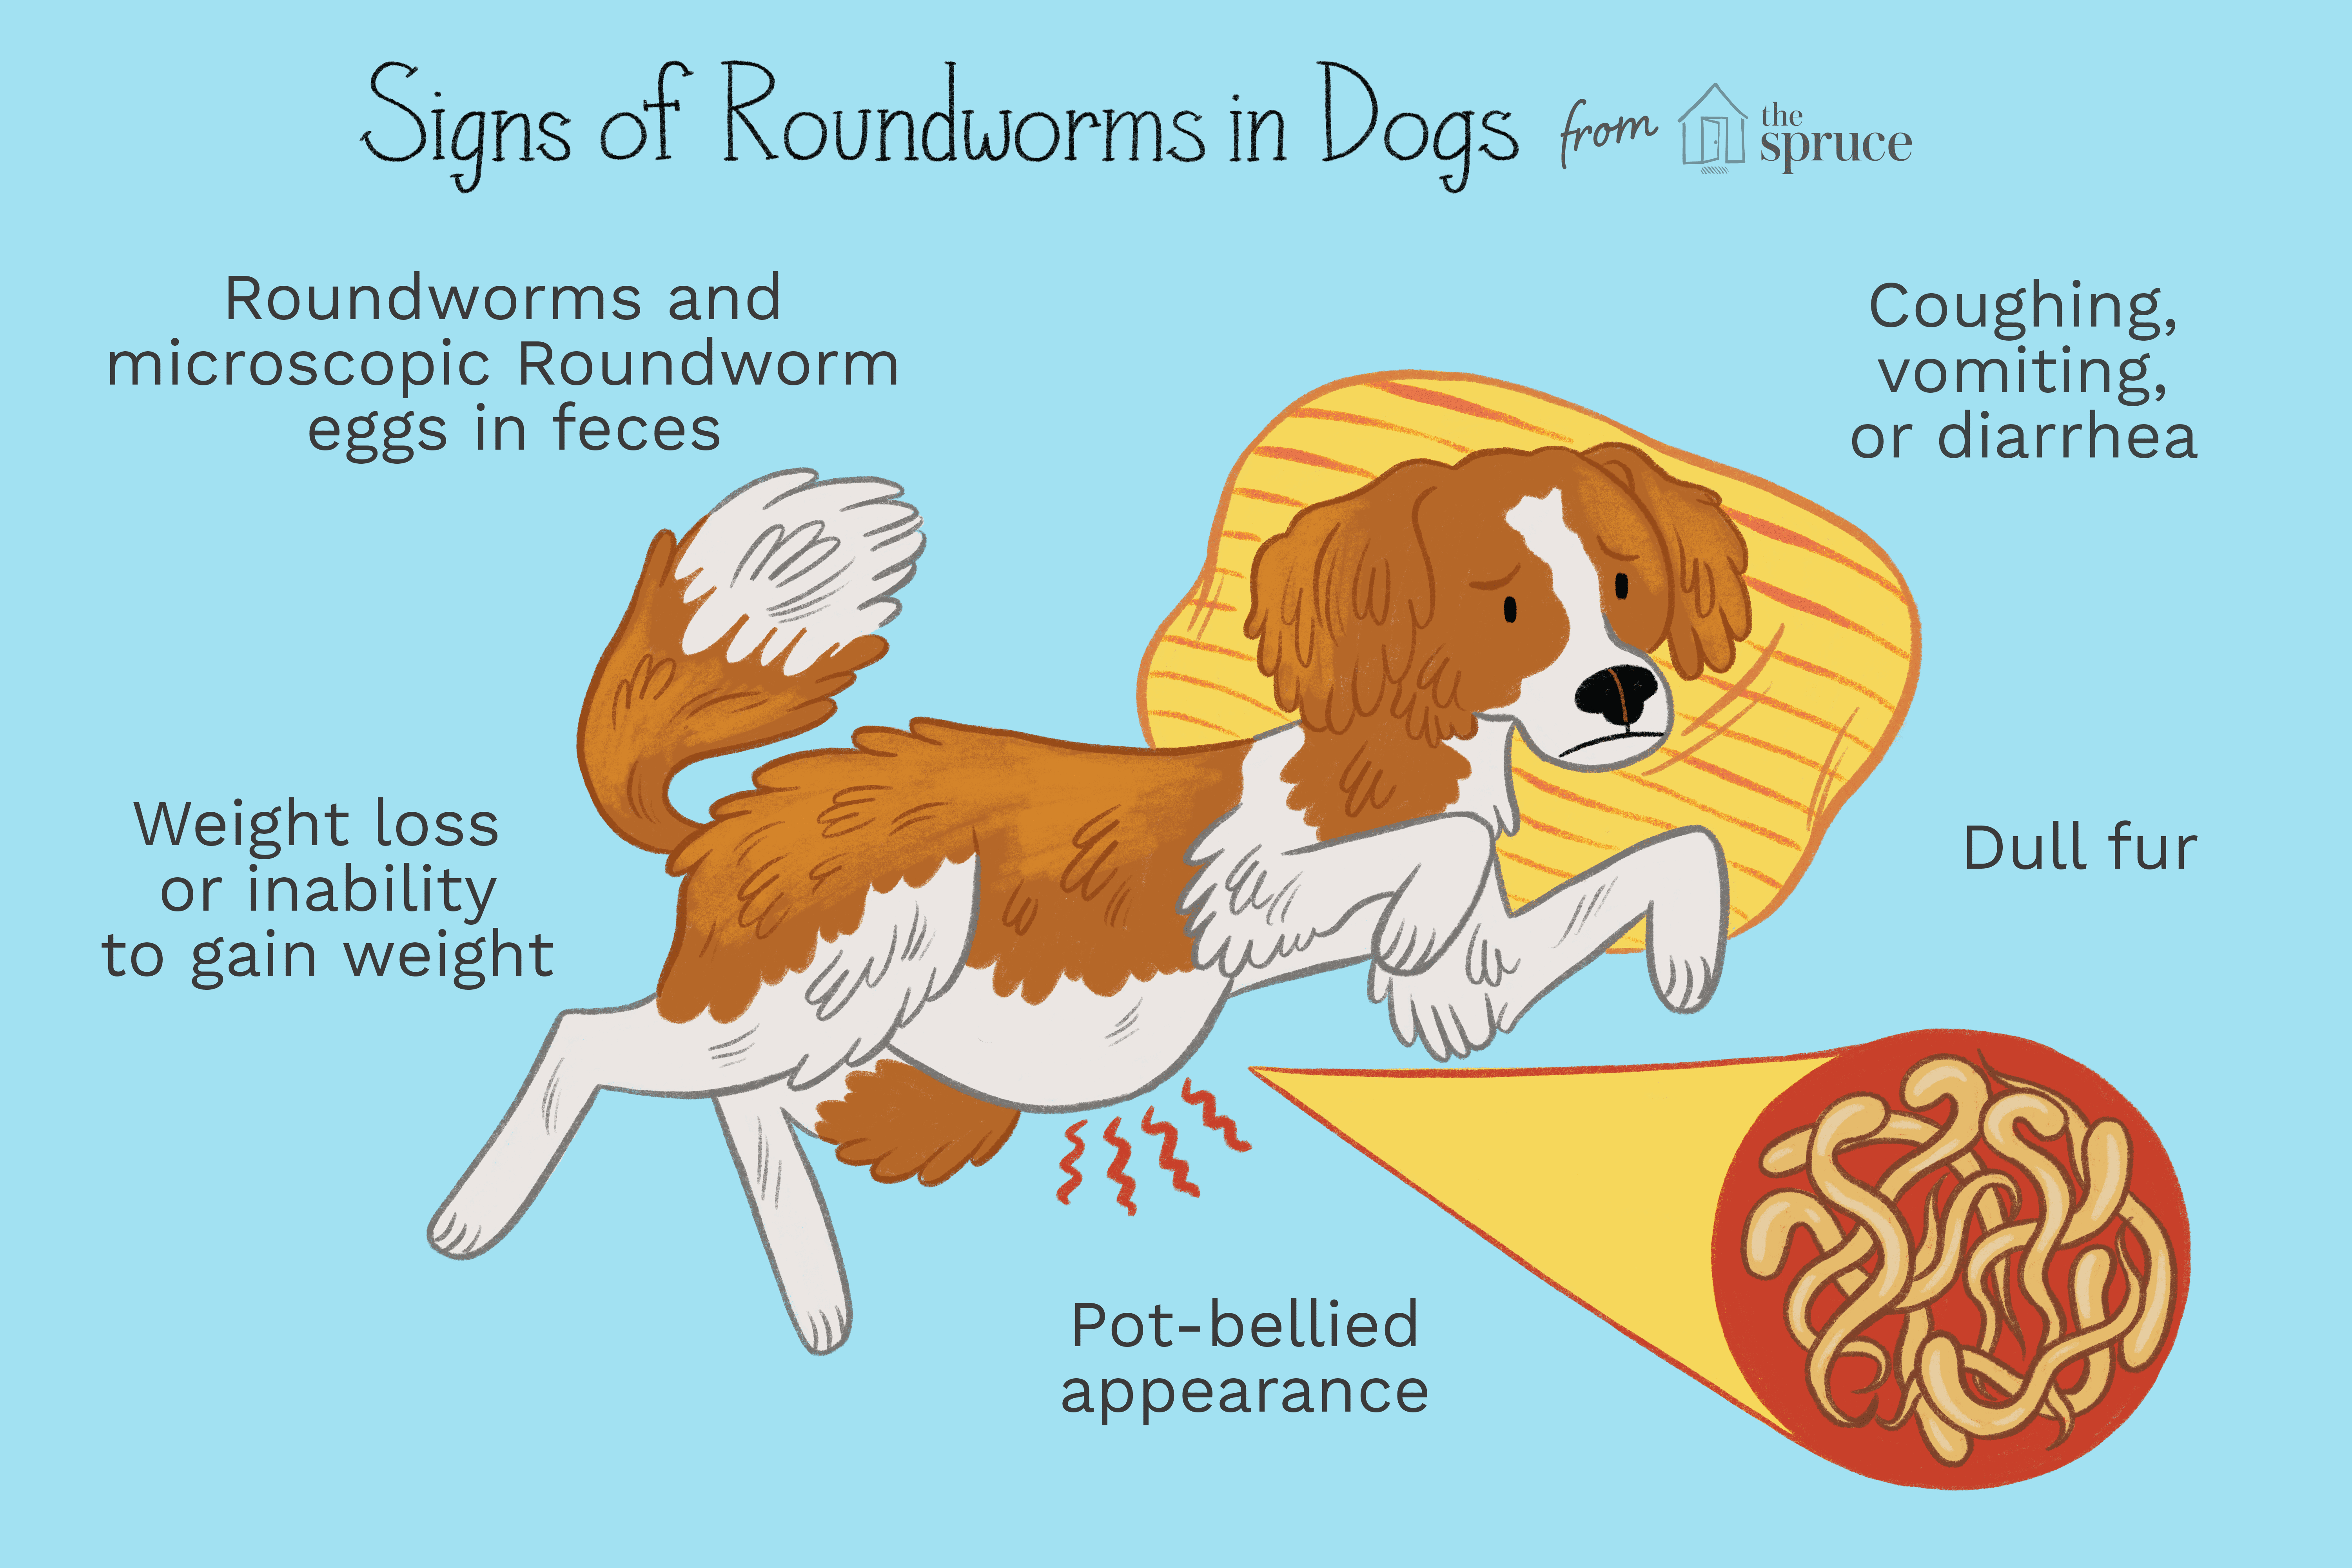 signs of roundworms in dogs illustration